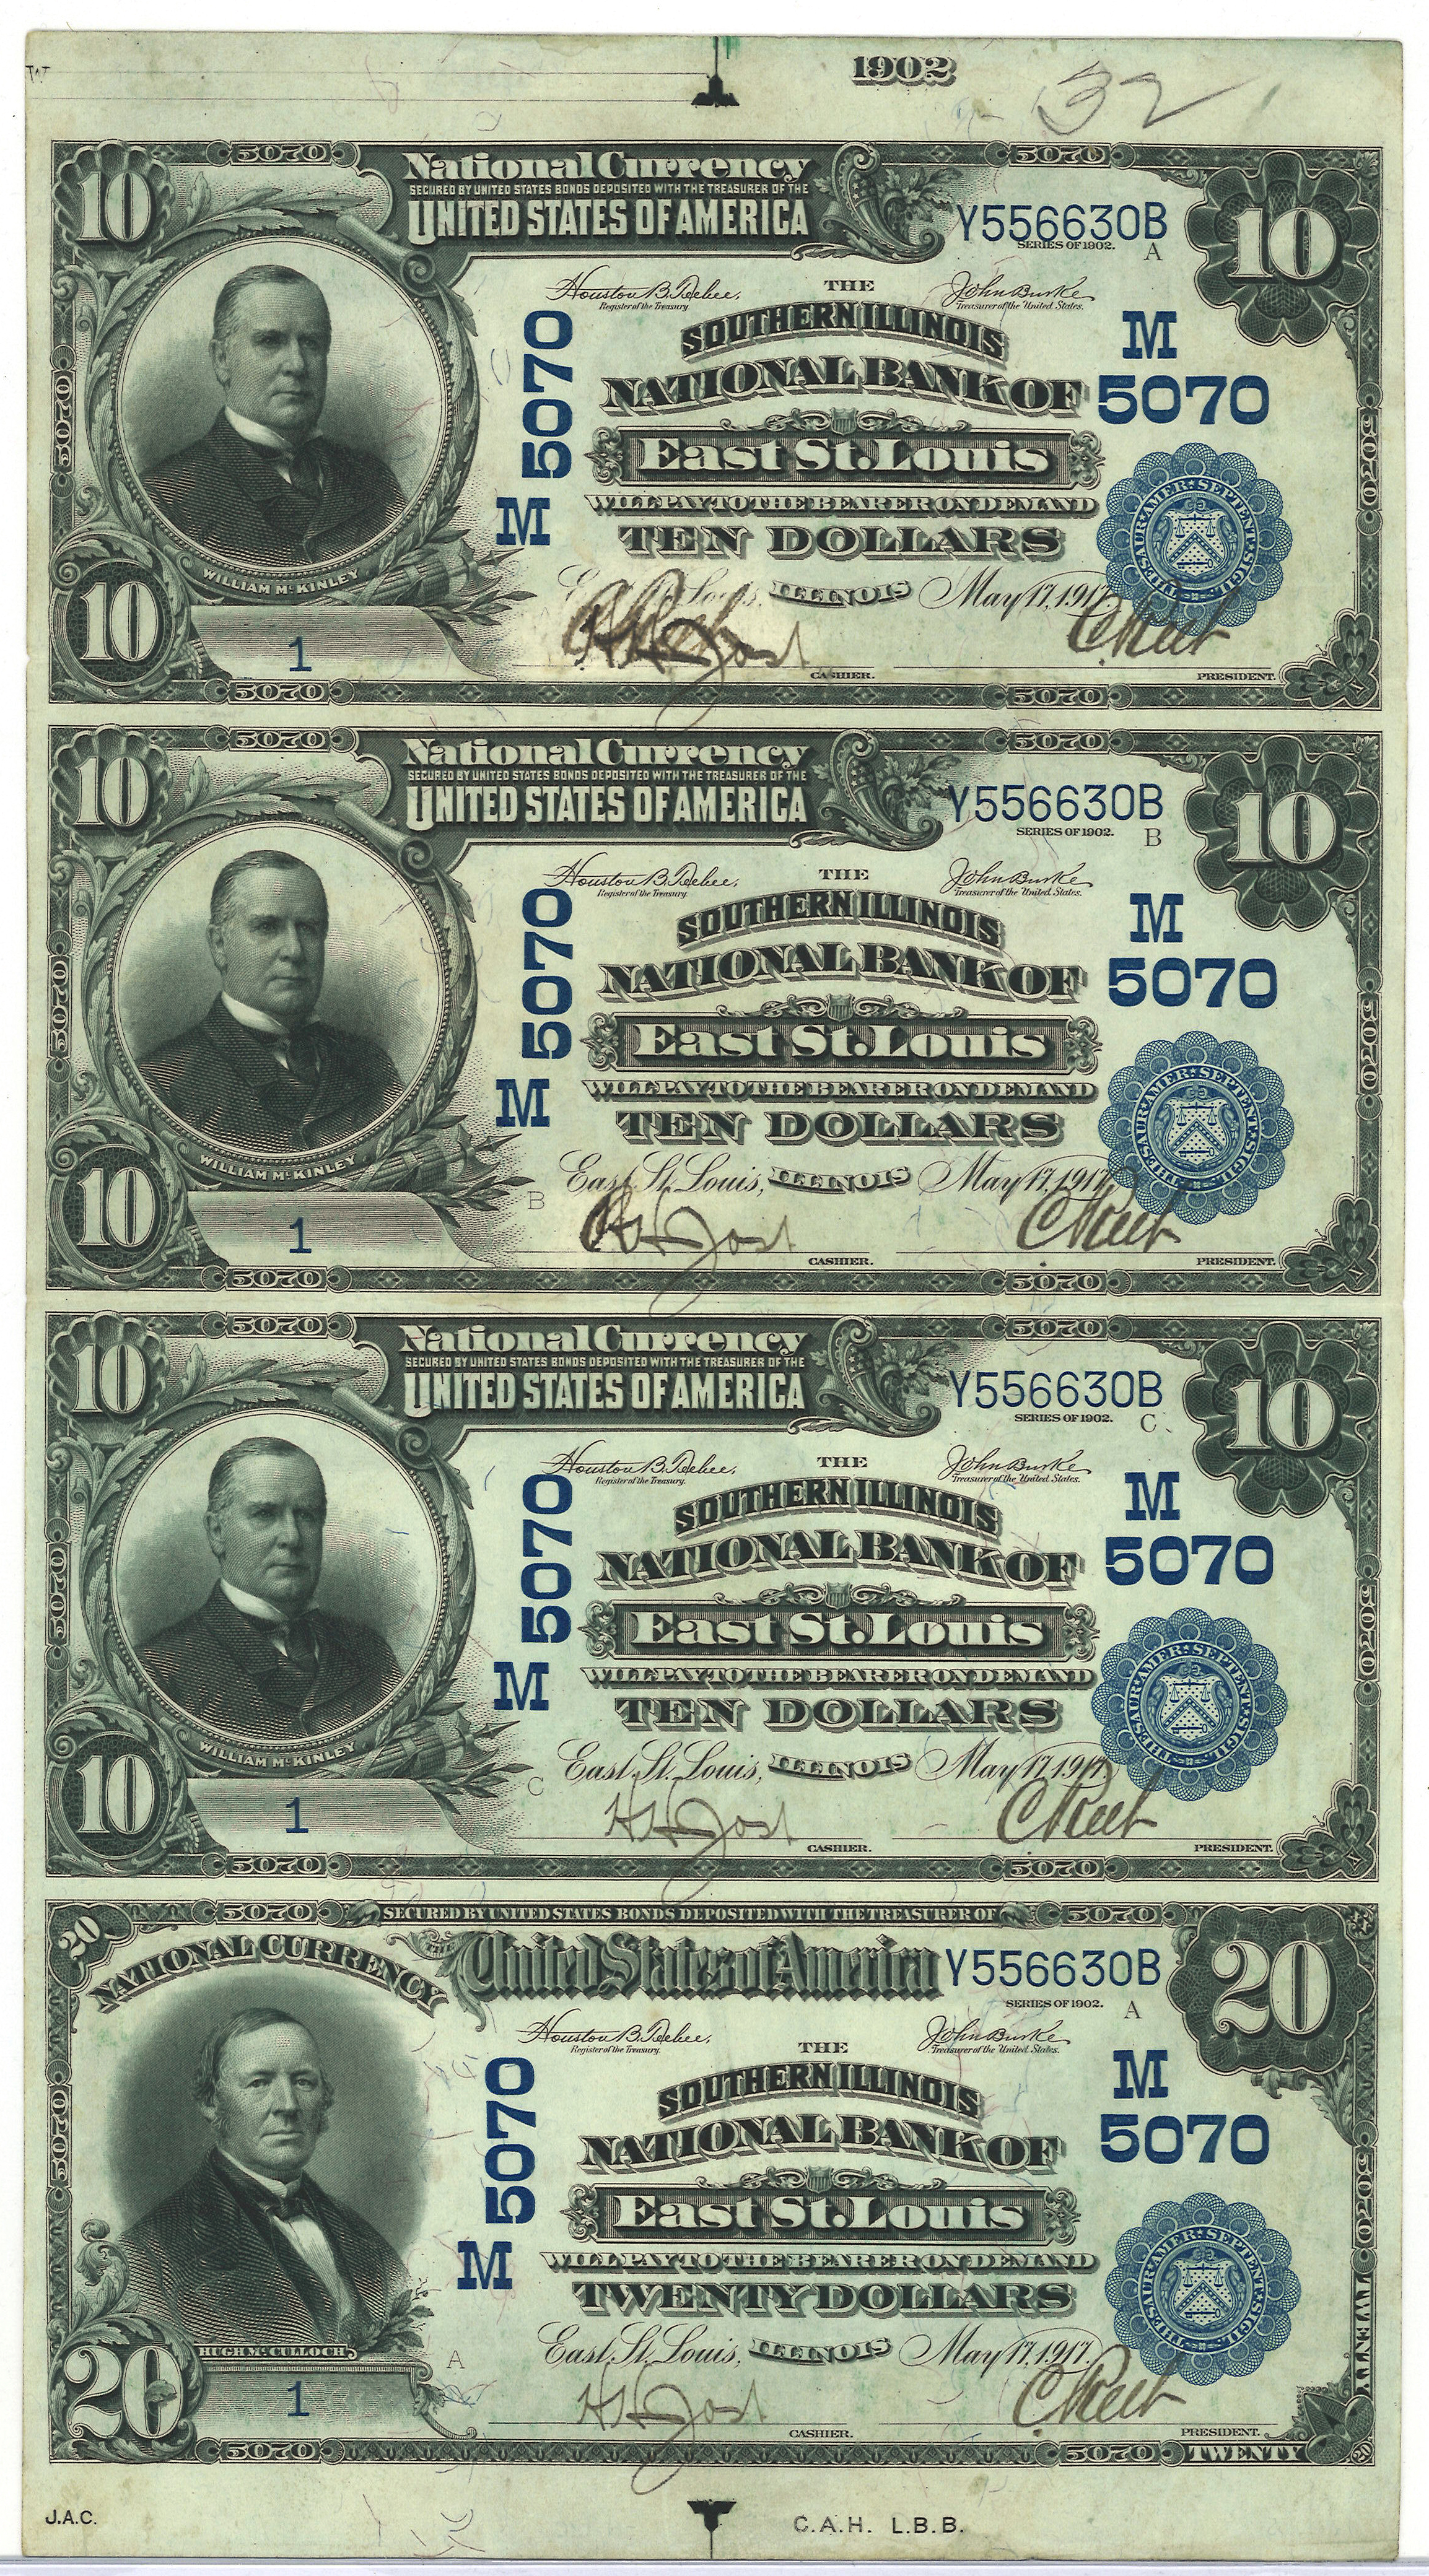 Uncut sheet of serial number 1 1902 Blue Seals - East St. Louis, IL Charter #5070.  Three $10 and one $20.